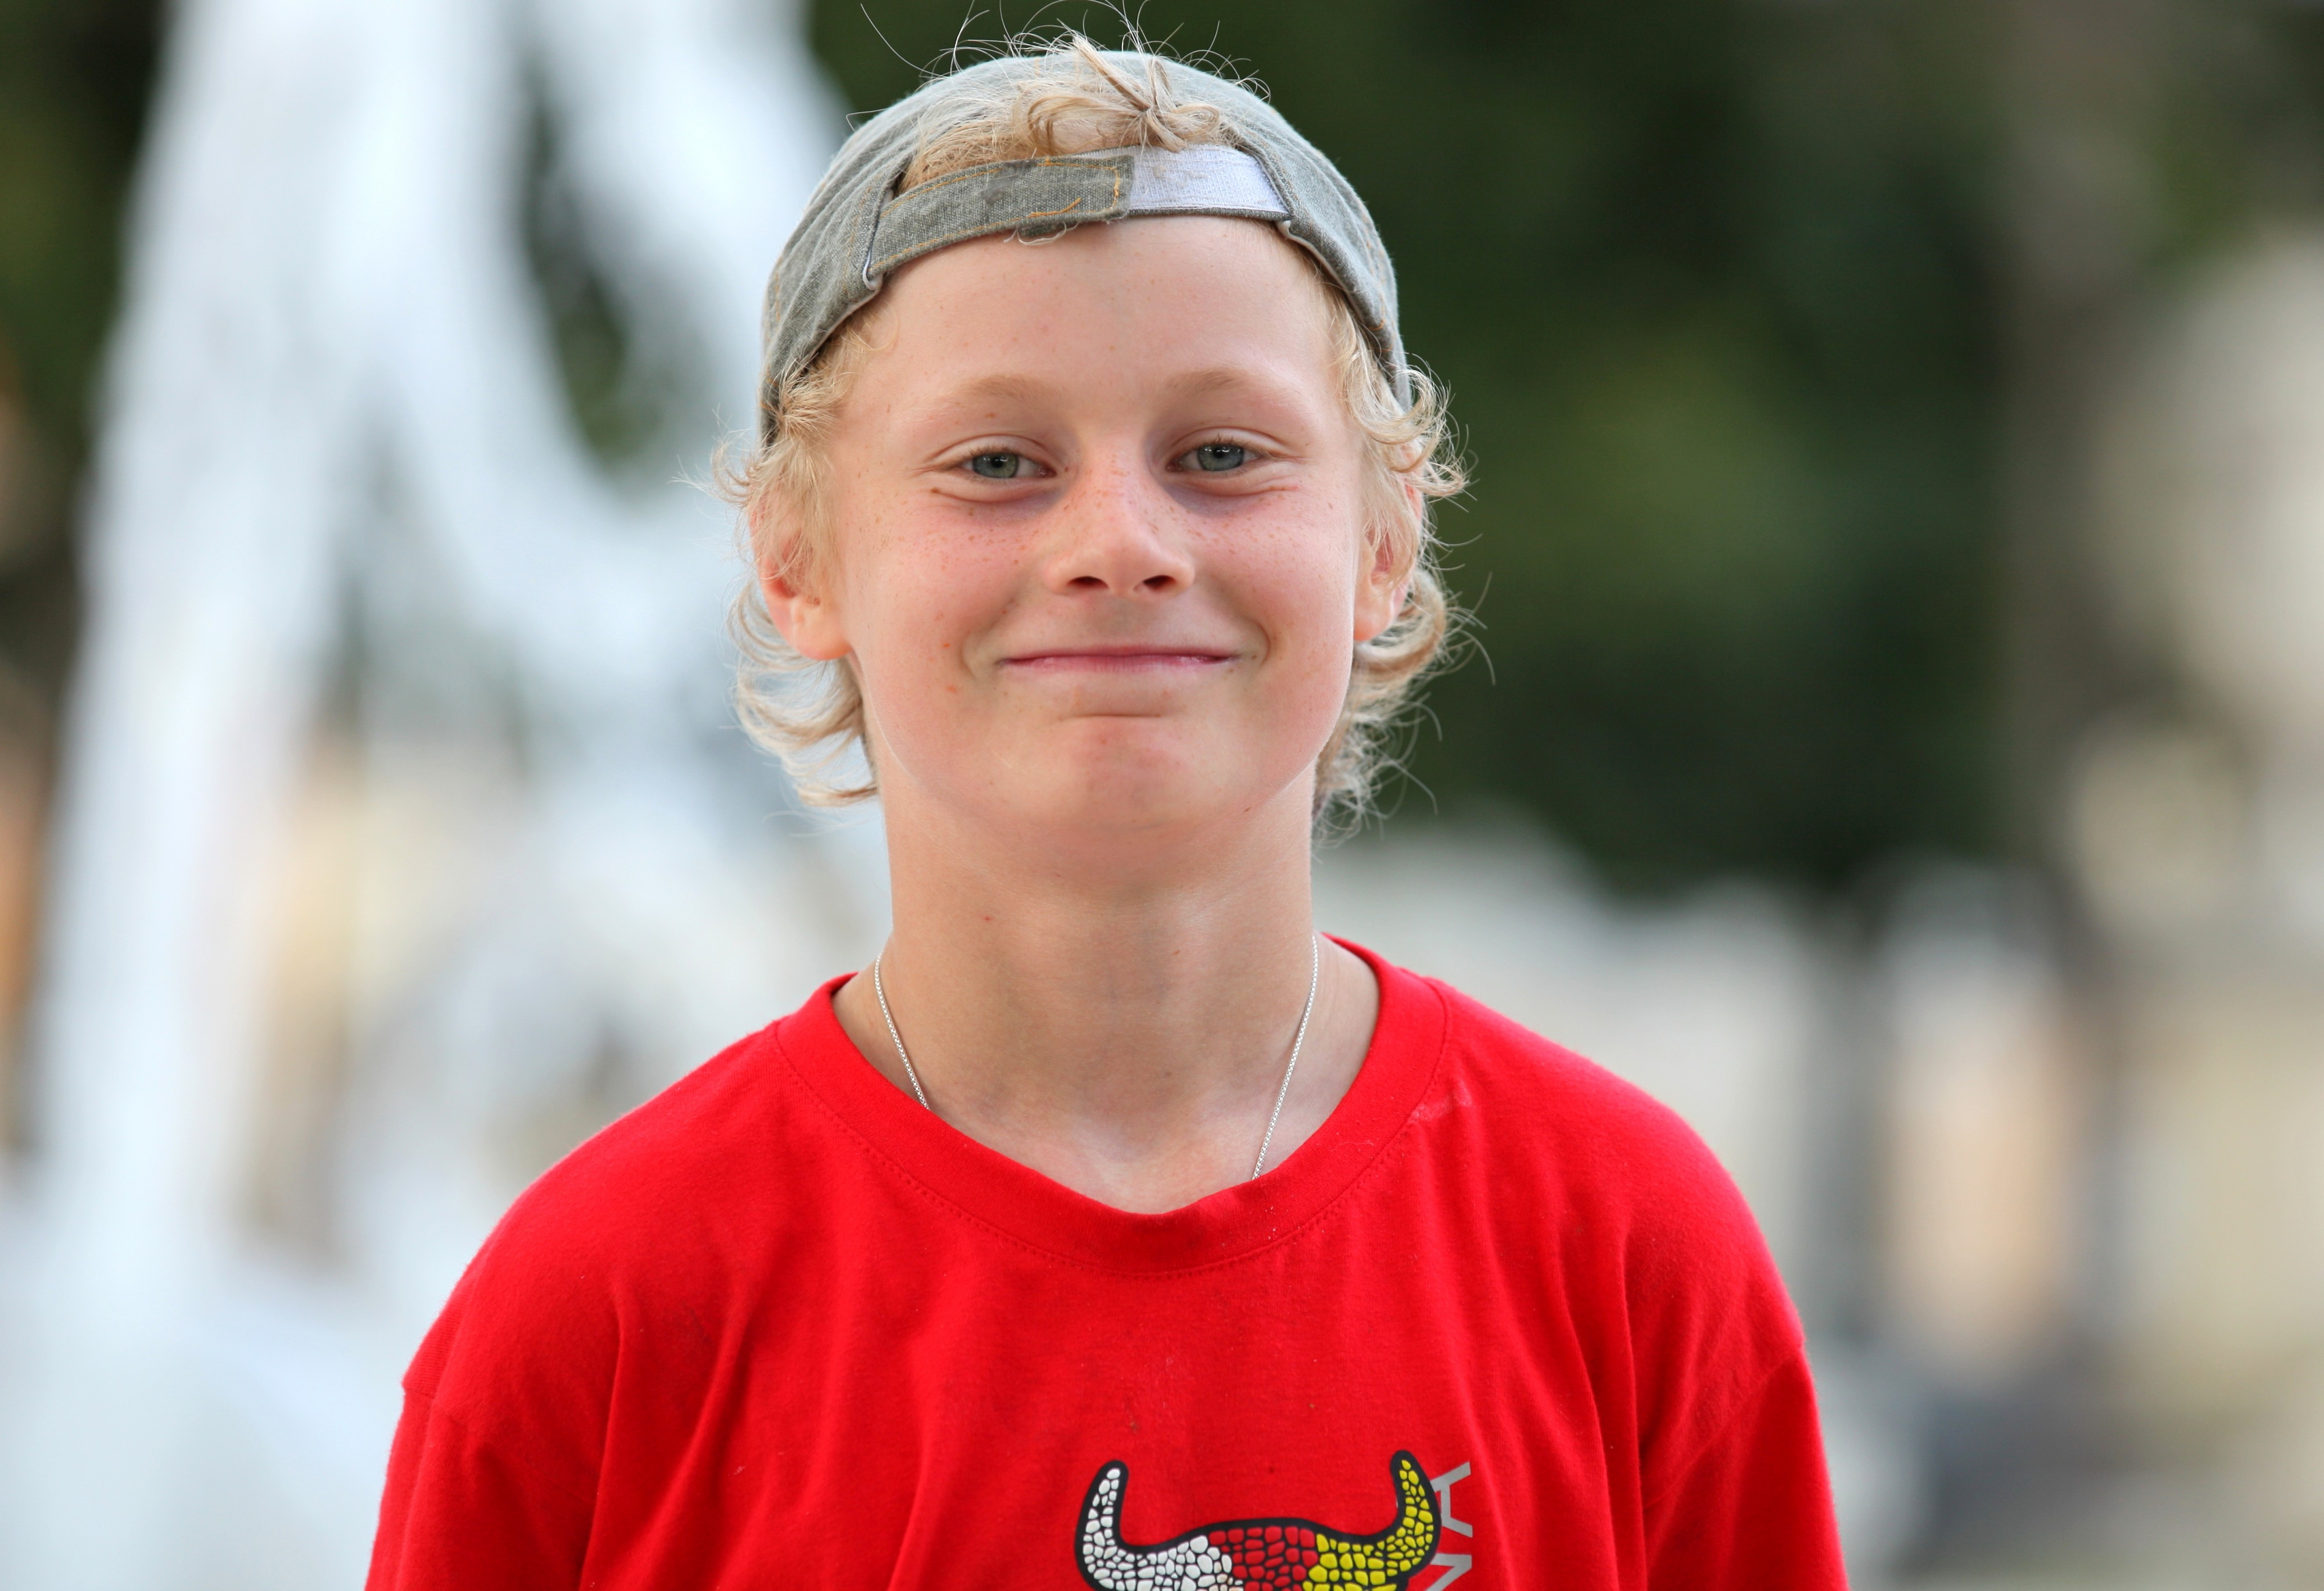 a young blond boy photographed in August 2013